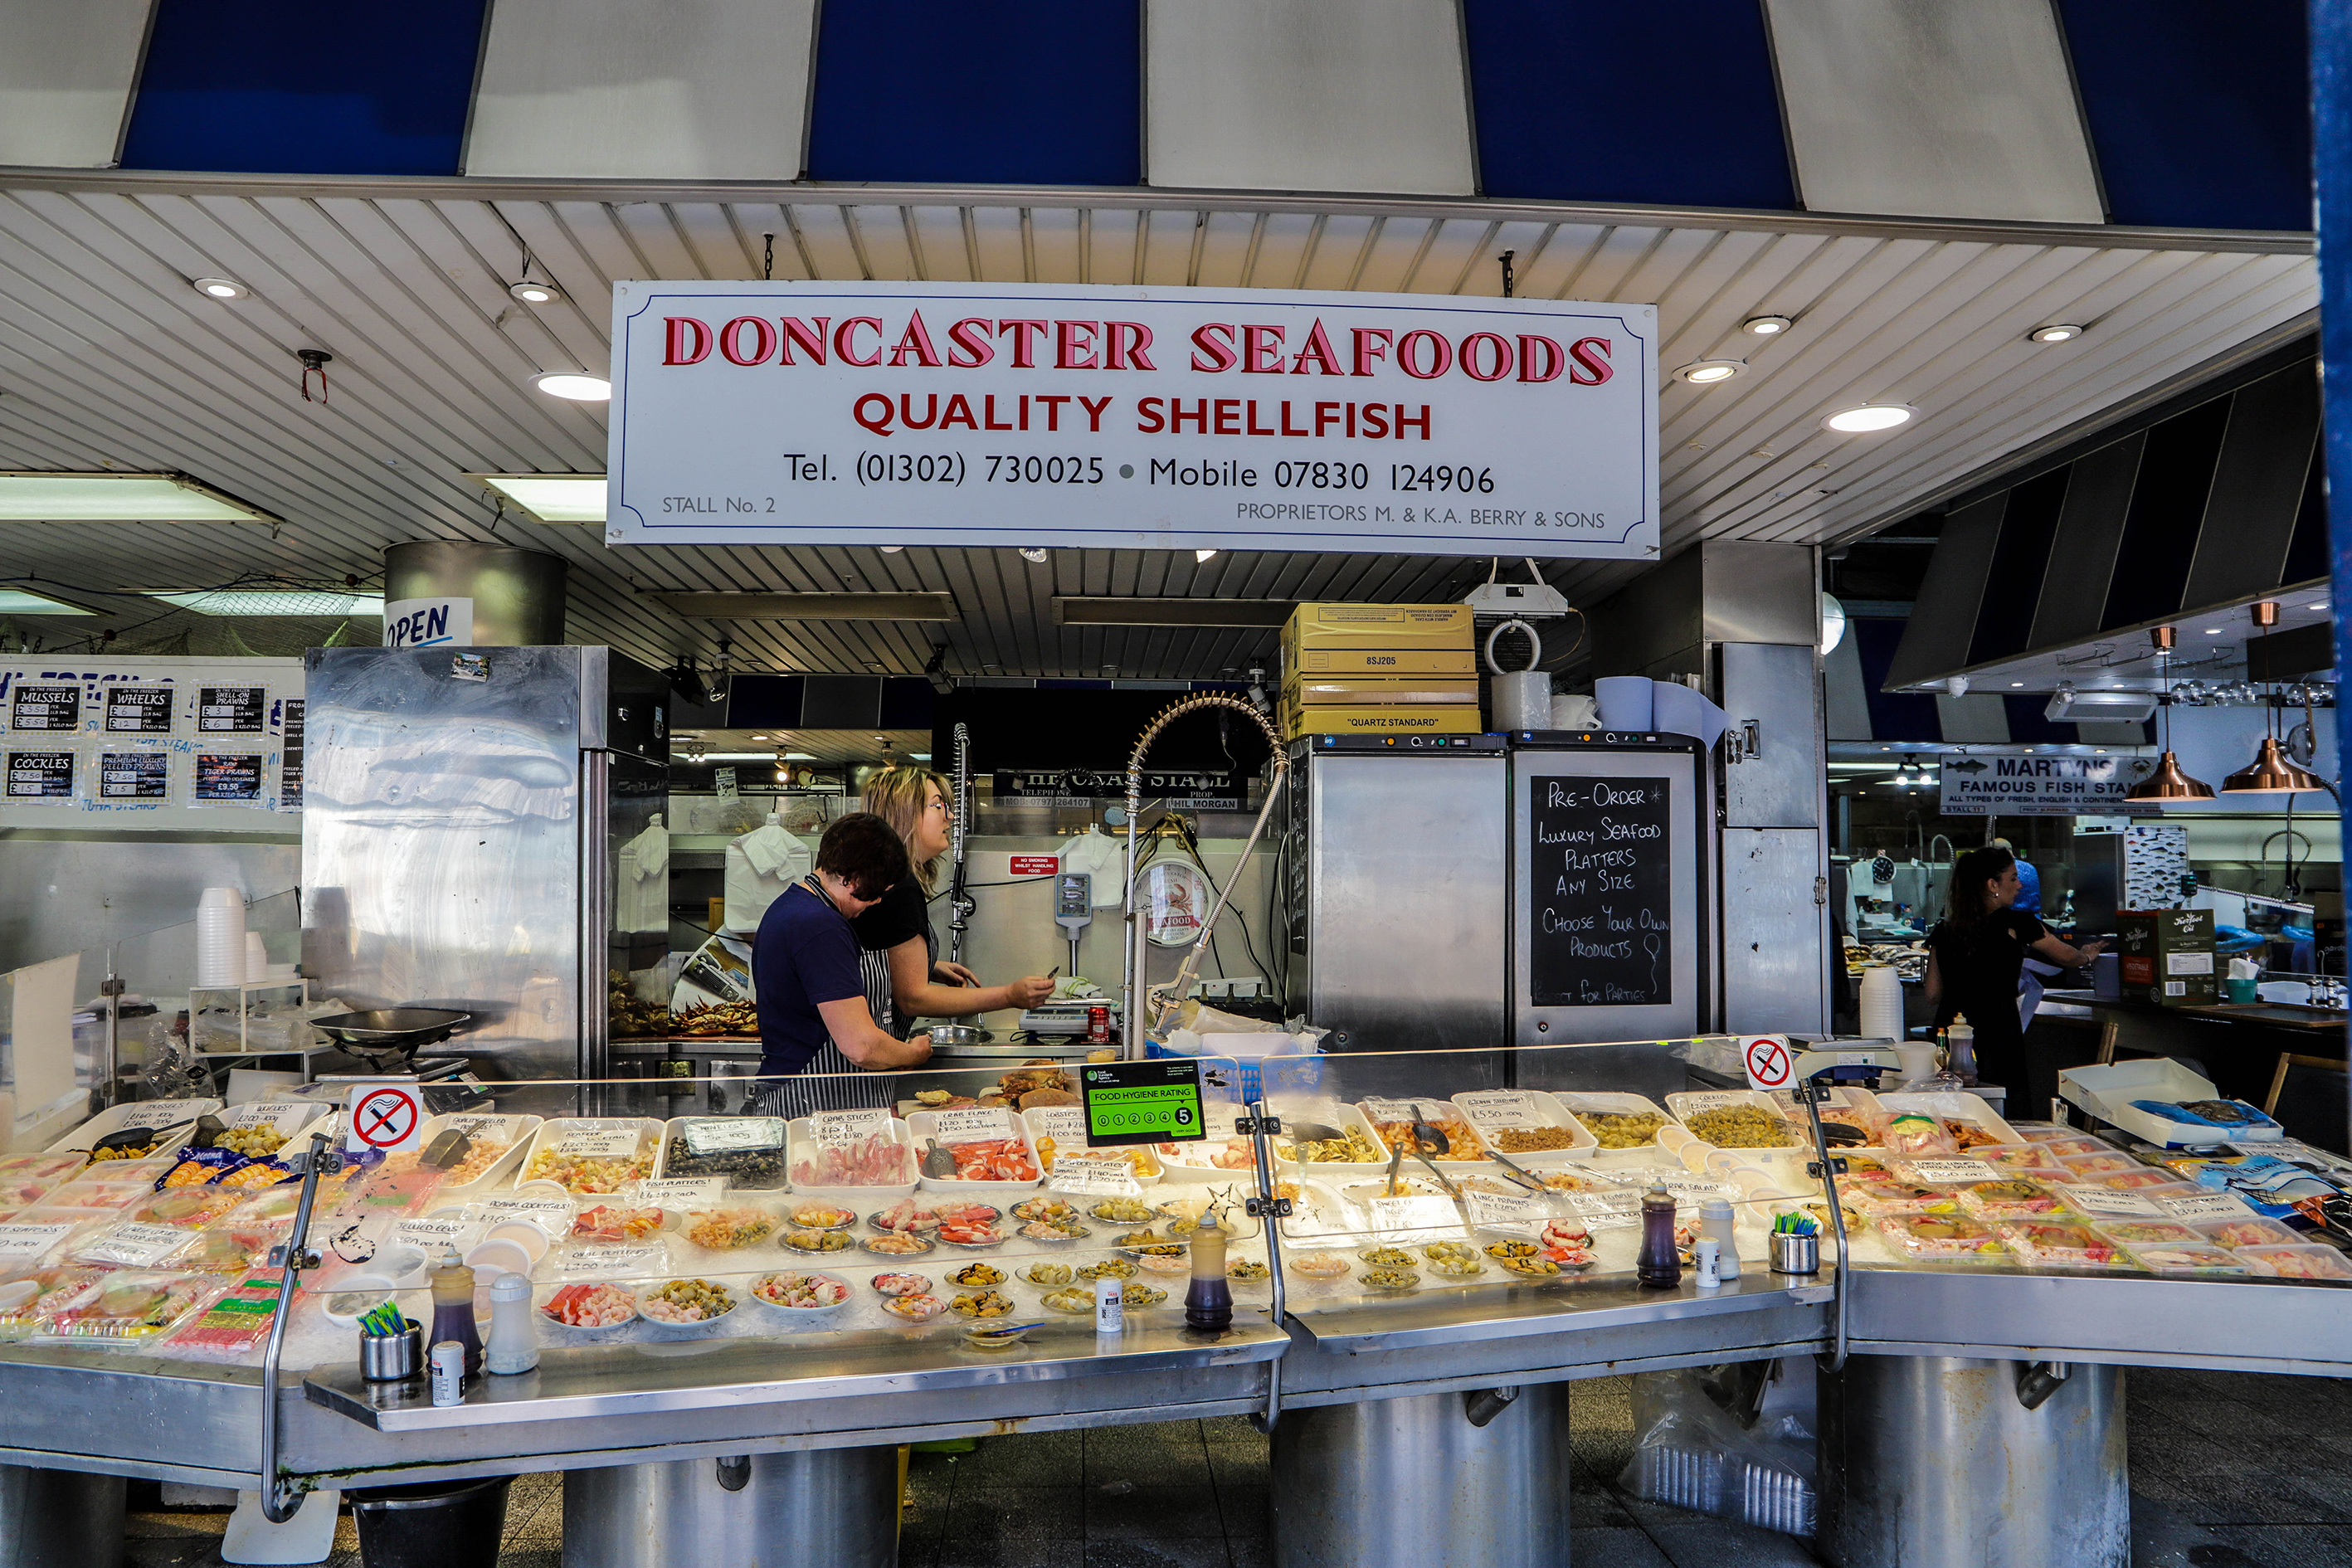 Doncaster seafoods